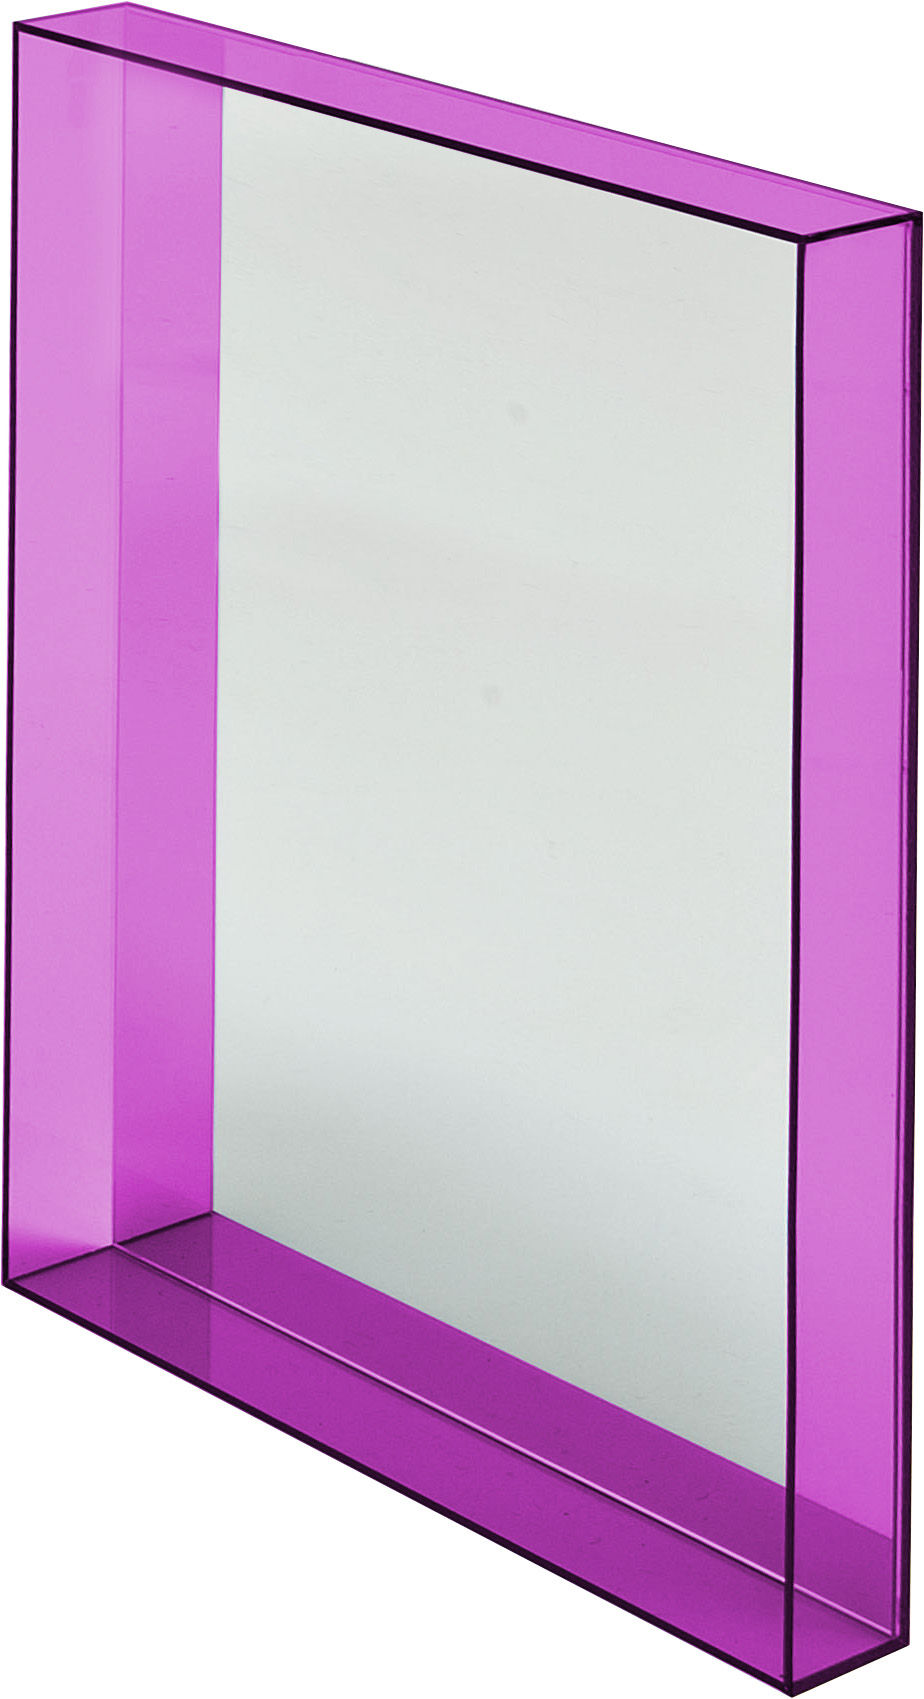 Only me wall mirror transparent fuchsia pink by kartell for Specchio philippe starck